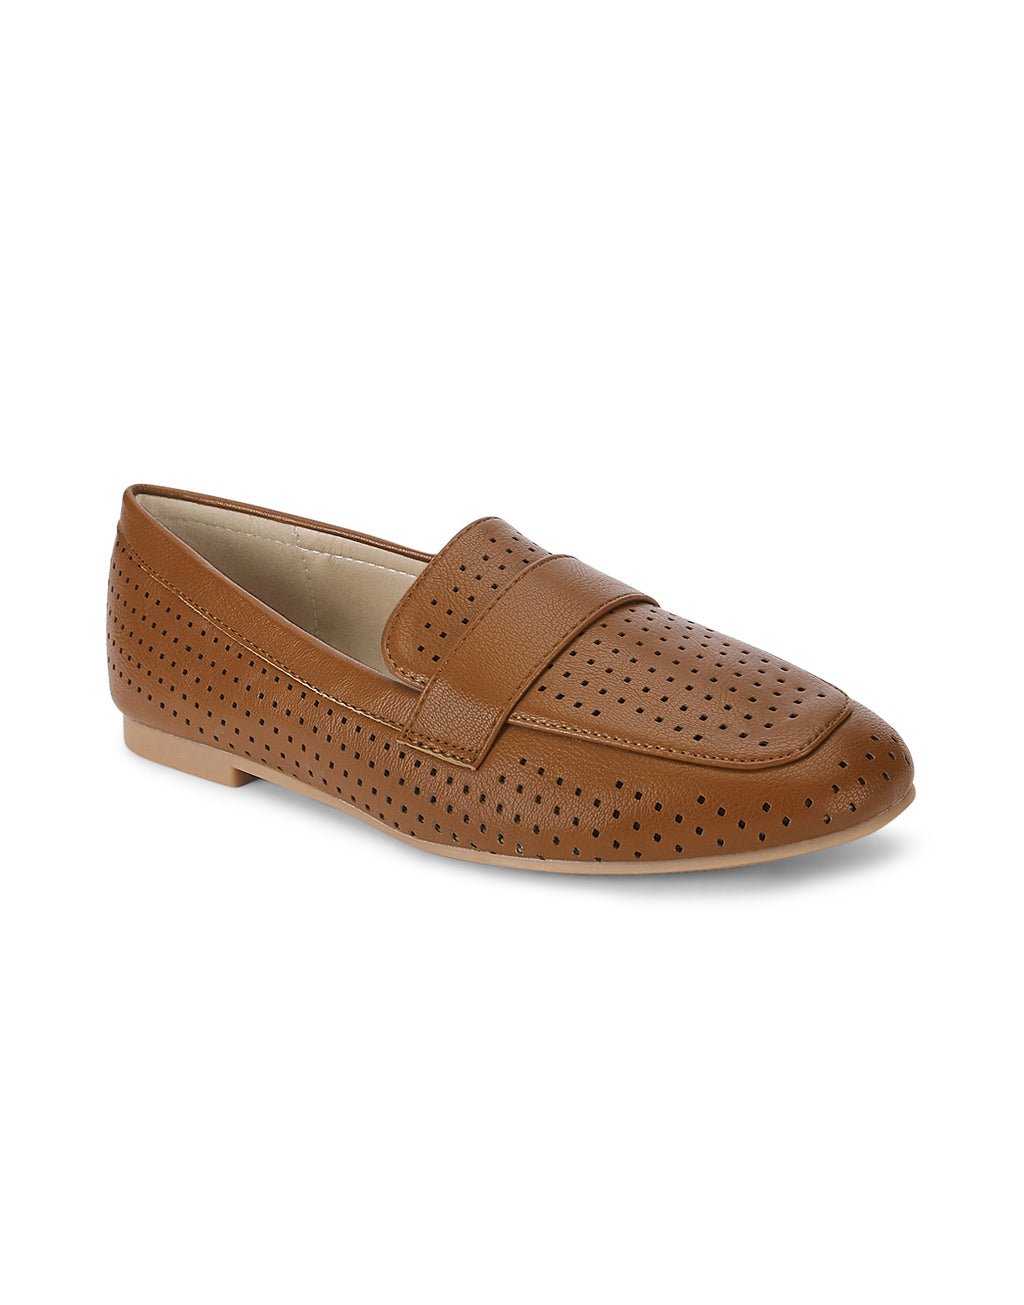 Claire Sleek Loafers